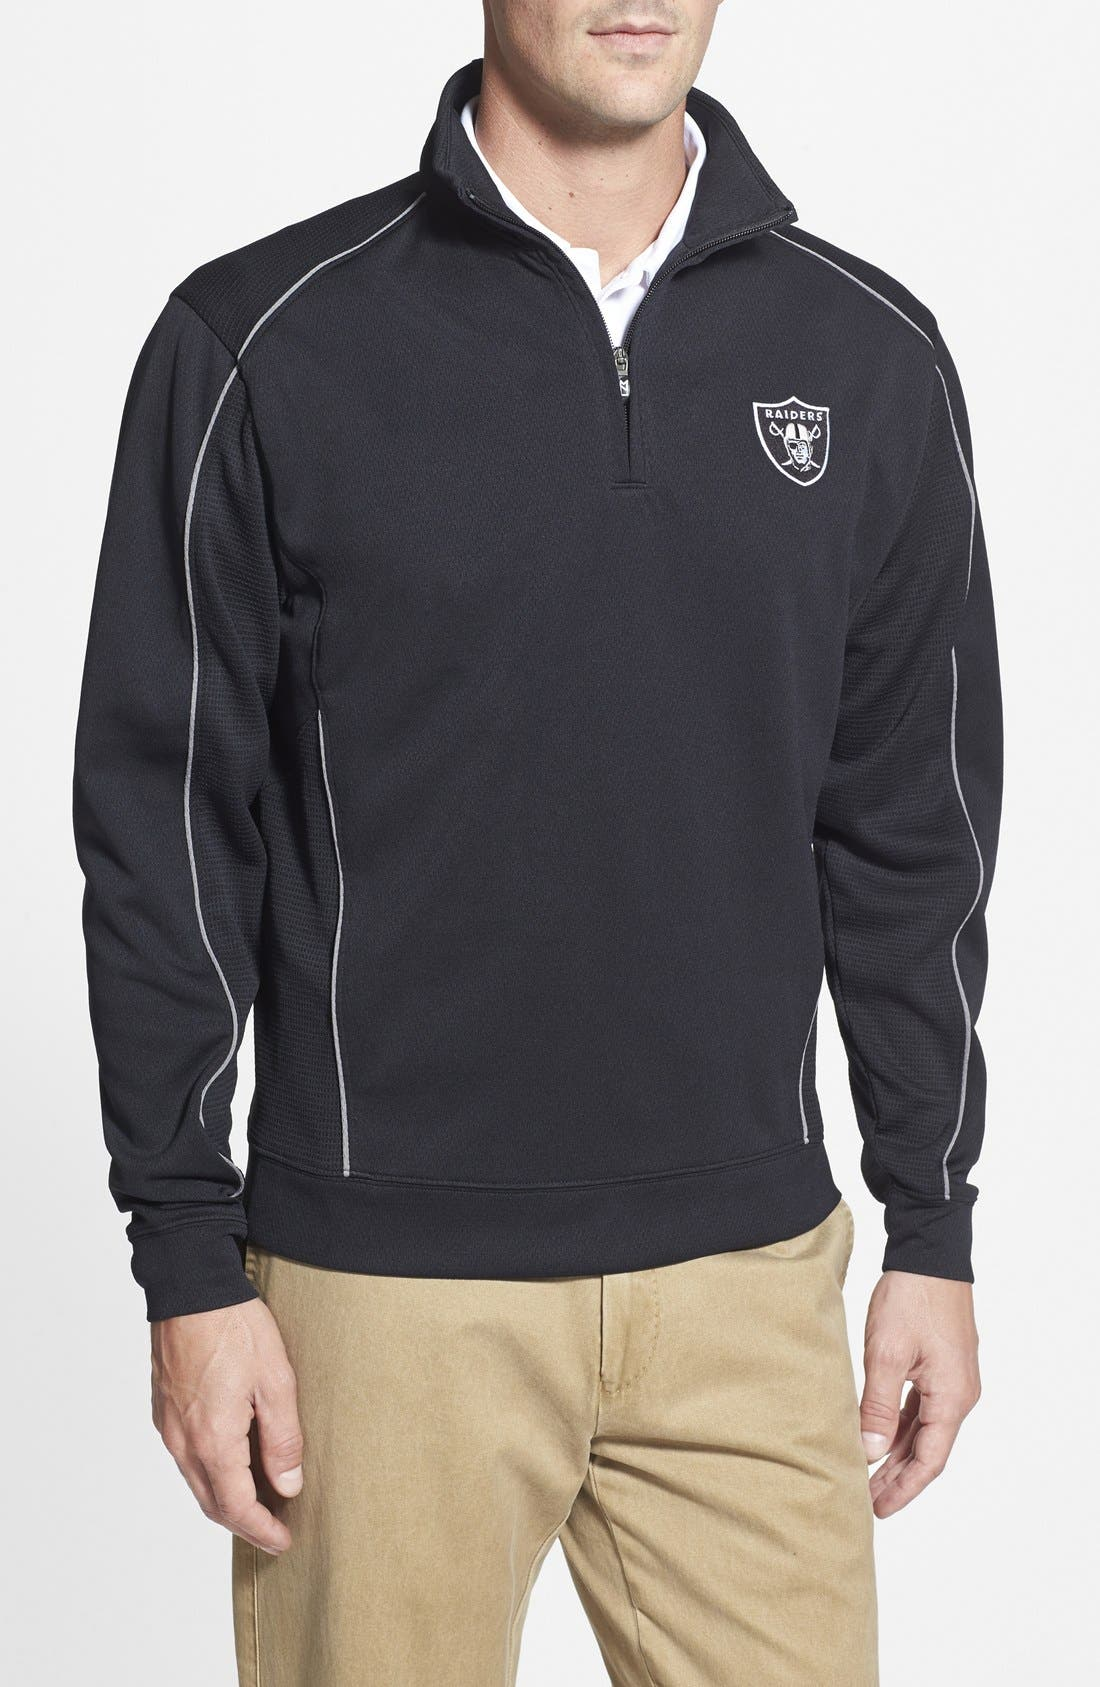 Oakland Raiders - Edge DryTec Moisture Wicking Half Zip Pullover,                             Main thumbnail 1, color,                             Black